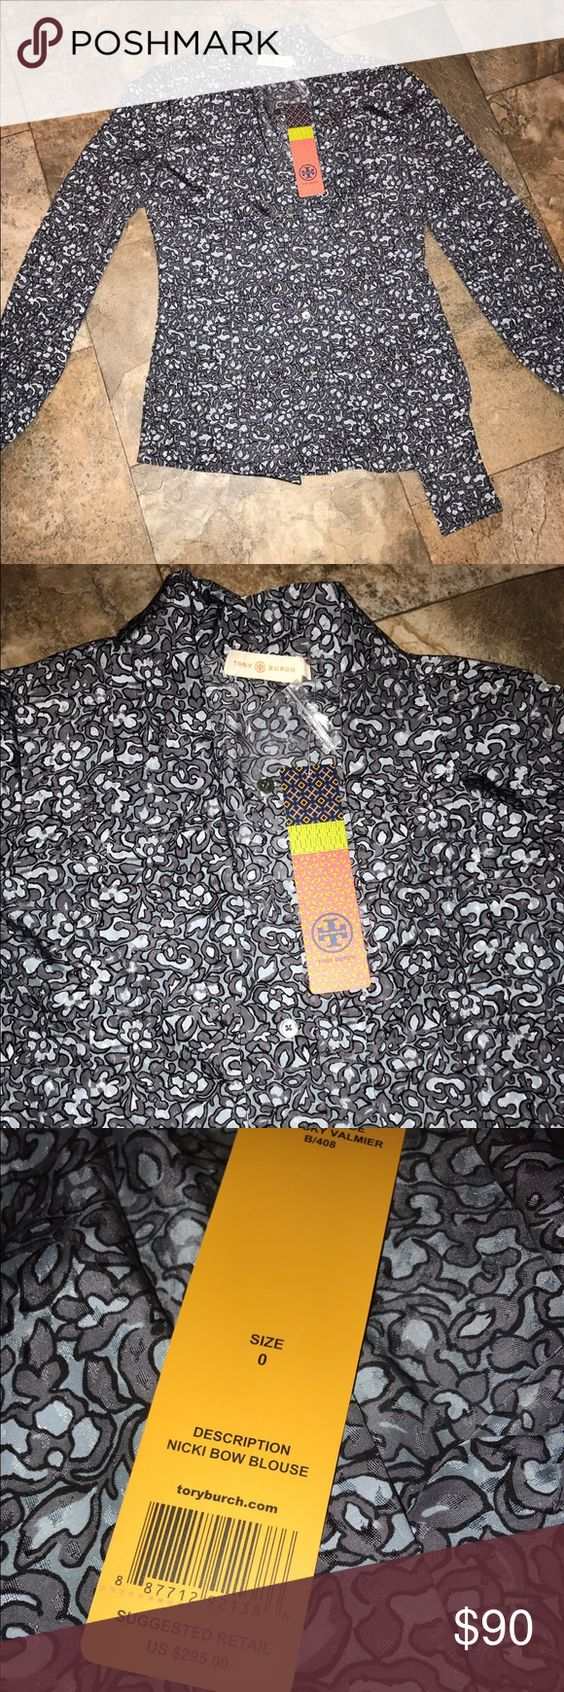 Tory burch shirt button up blouse NWT size 0 Tory burch shirt button up blouse NWT size 0 Tory Burch Tops Blouses